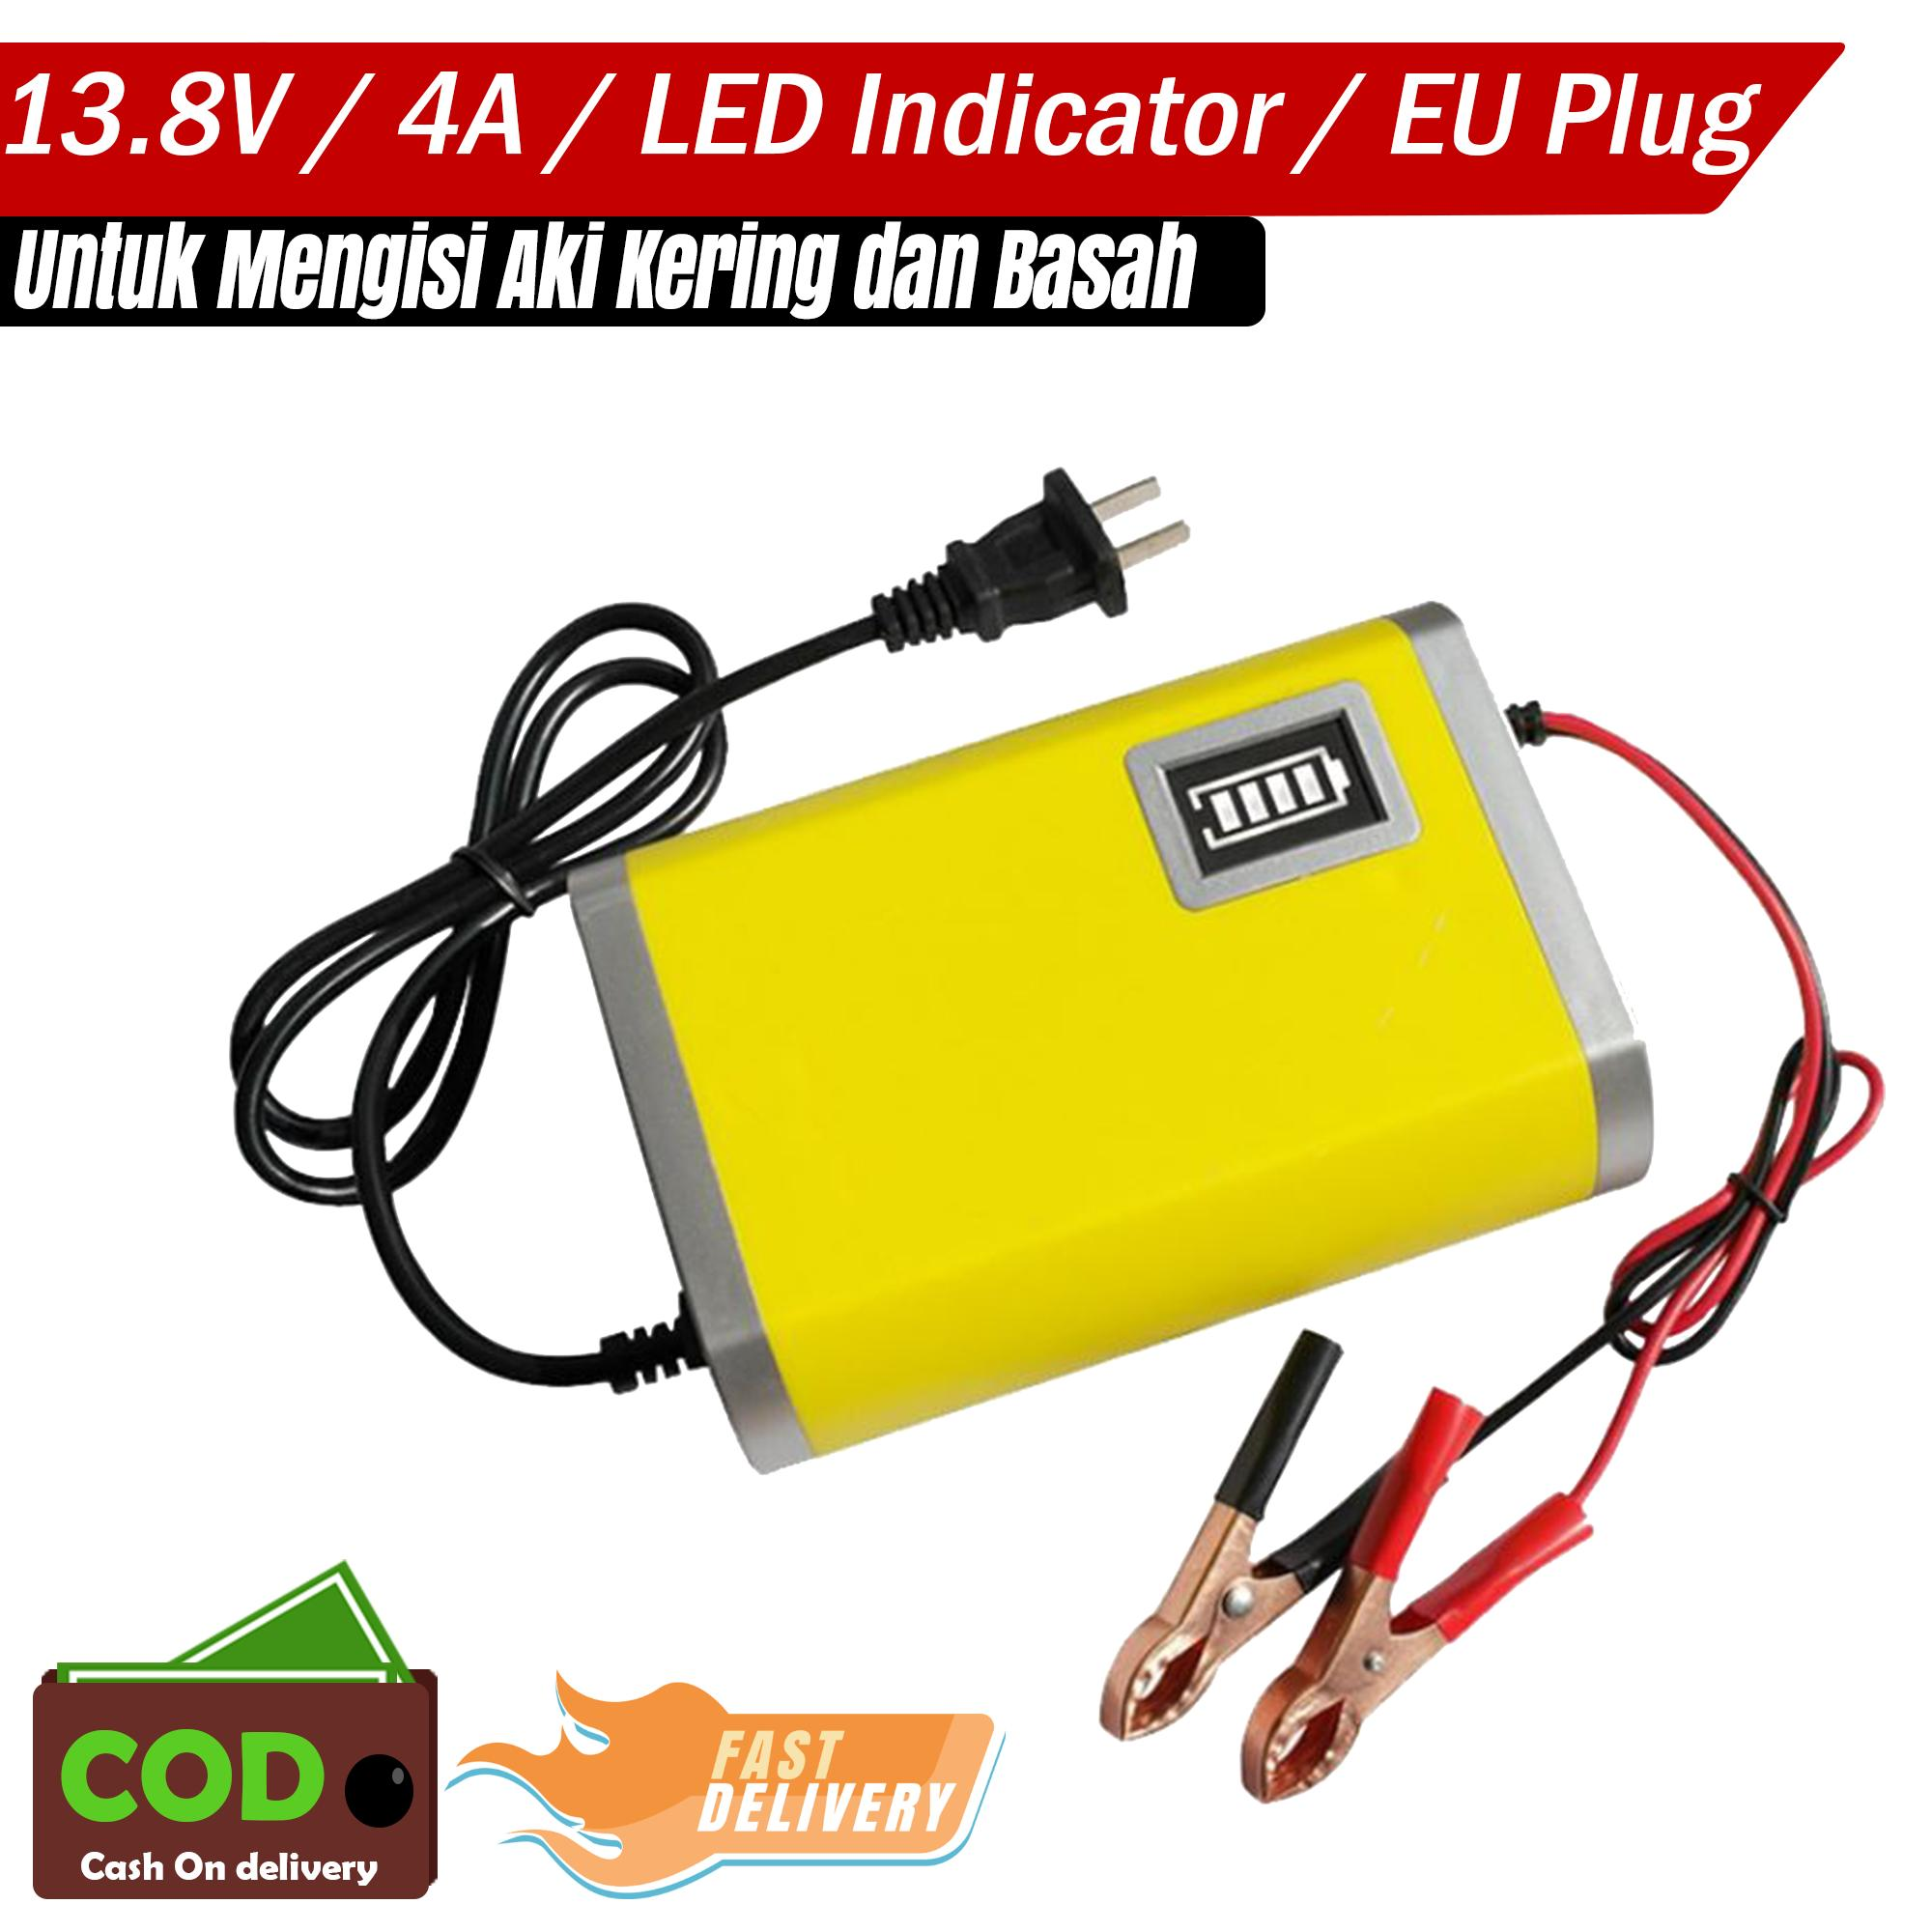 Charger Aki Mobil Motor 13.8V 4A Portable with LED Indicator